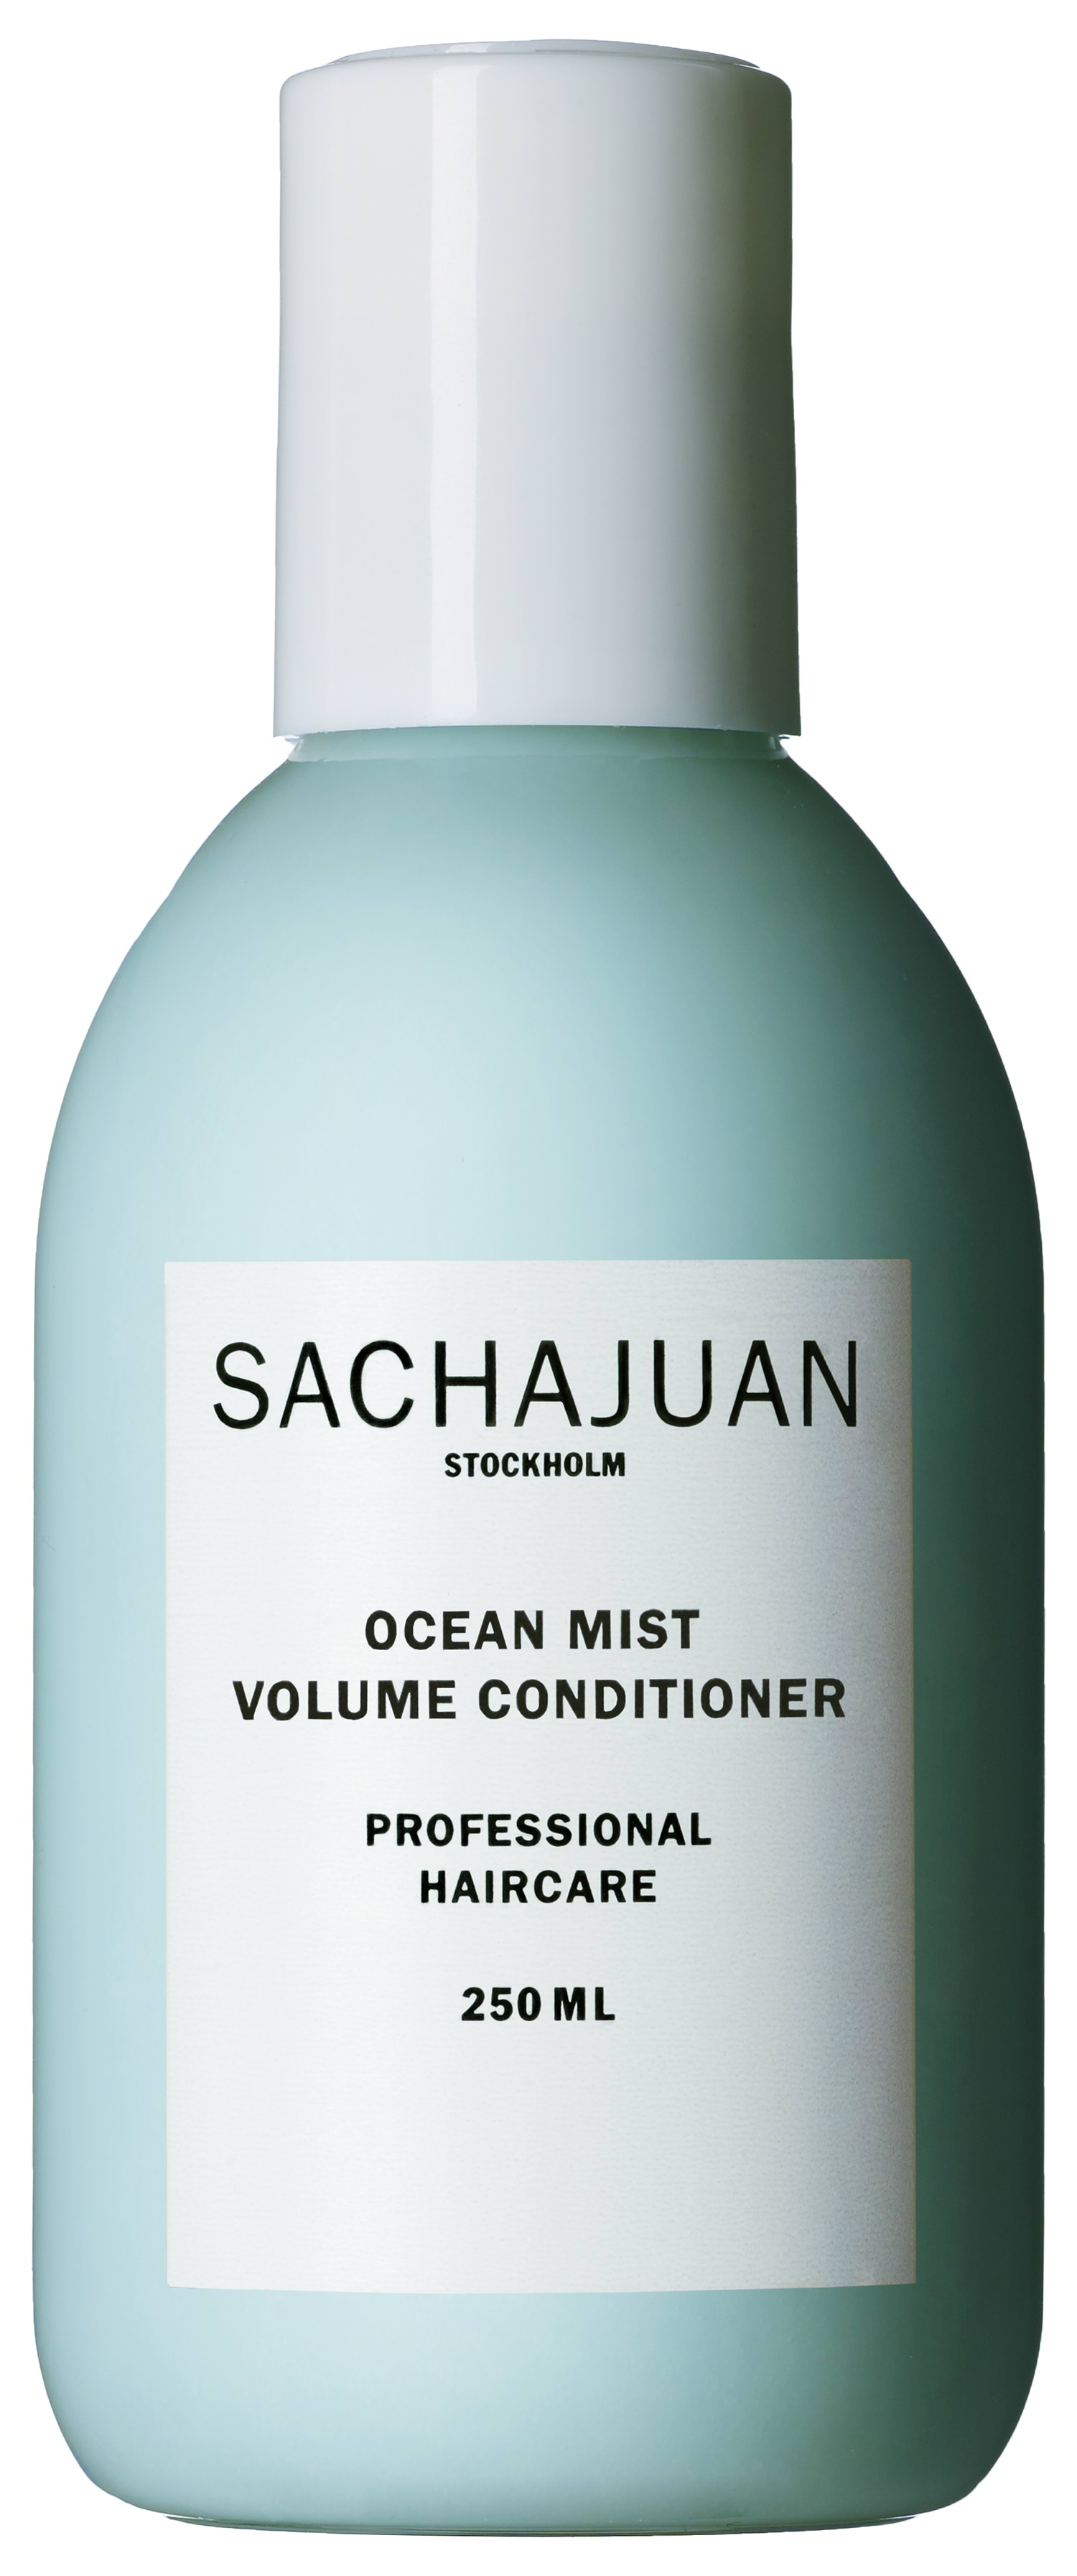 Sachajuan Ocean Mist Volume Conditioner 150AED